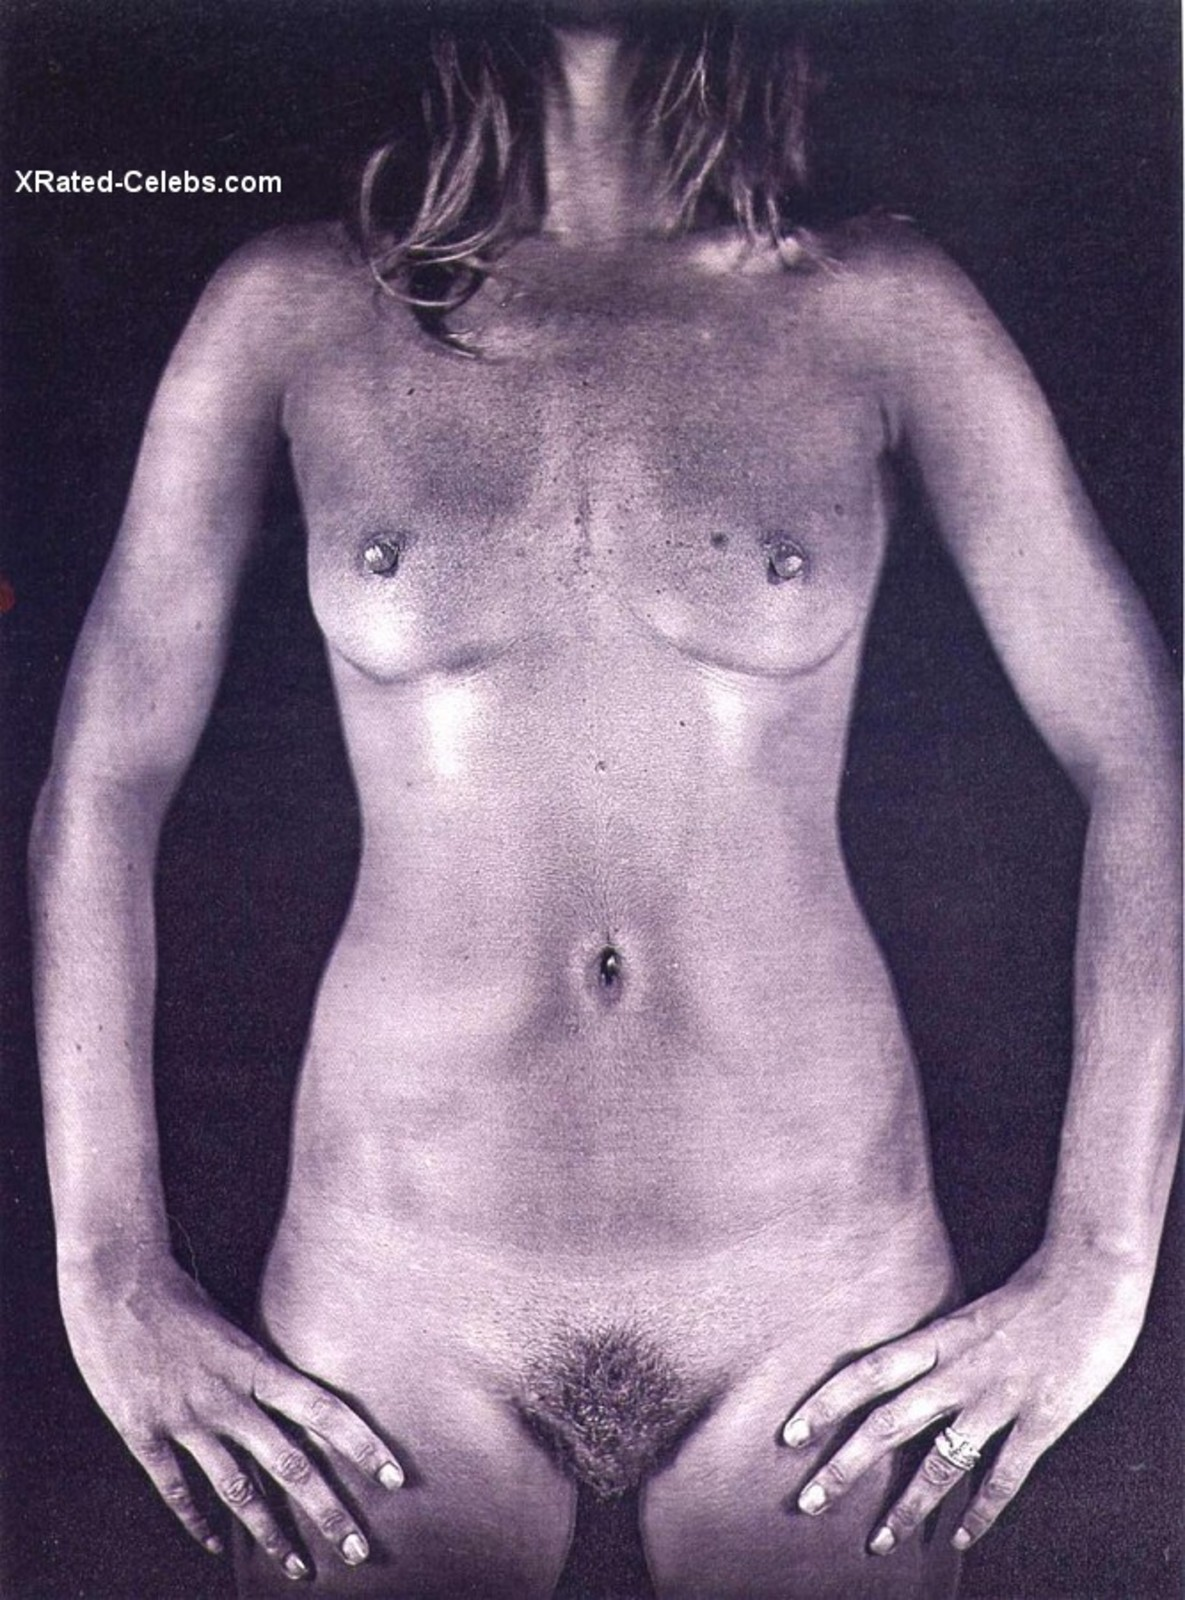 Kate moss full nude consider, that